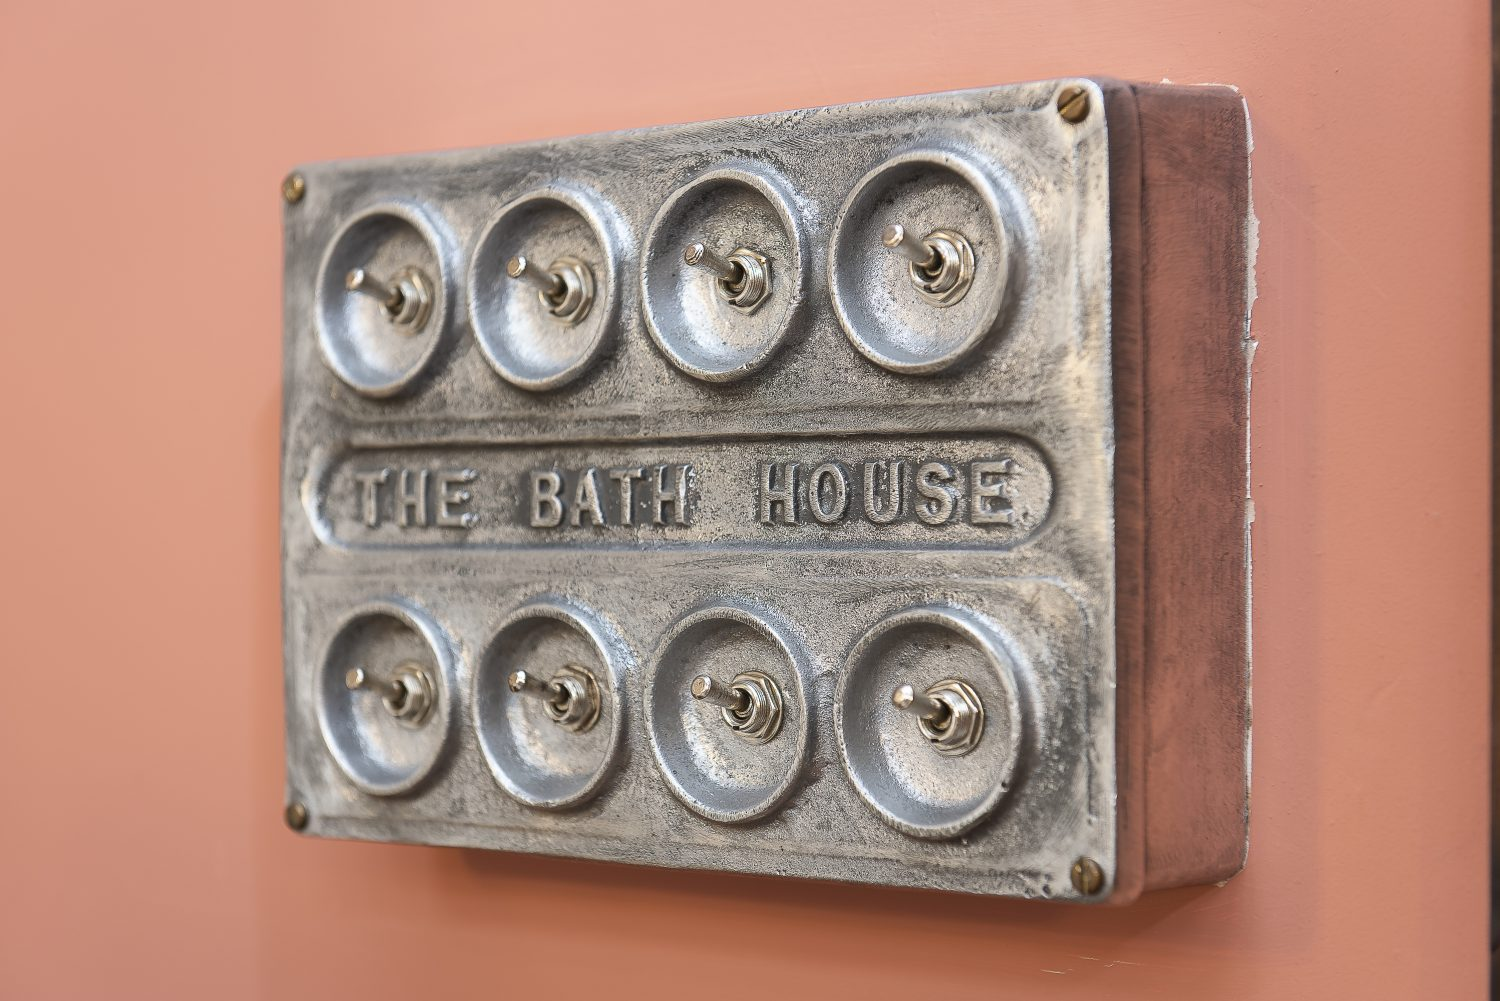 Bespoke industrial steel light switches and plug points are embossed with the words The Bath House